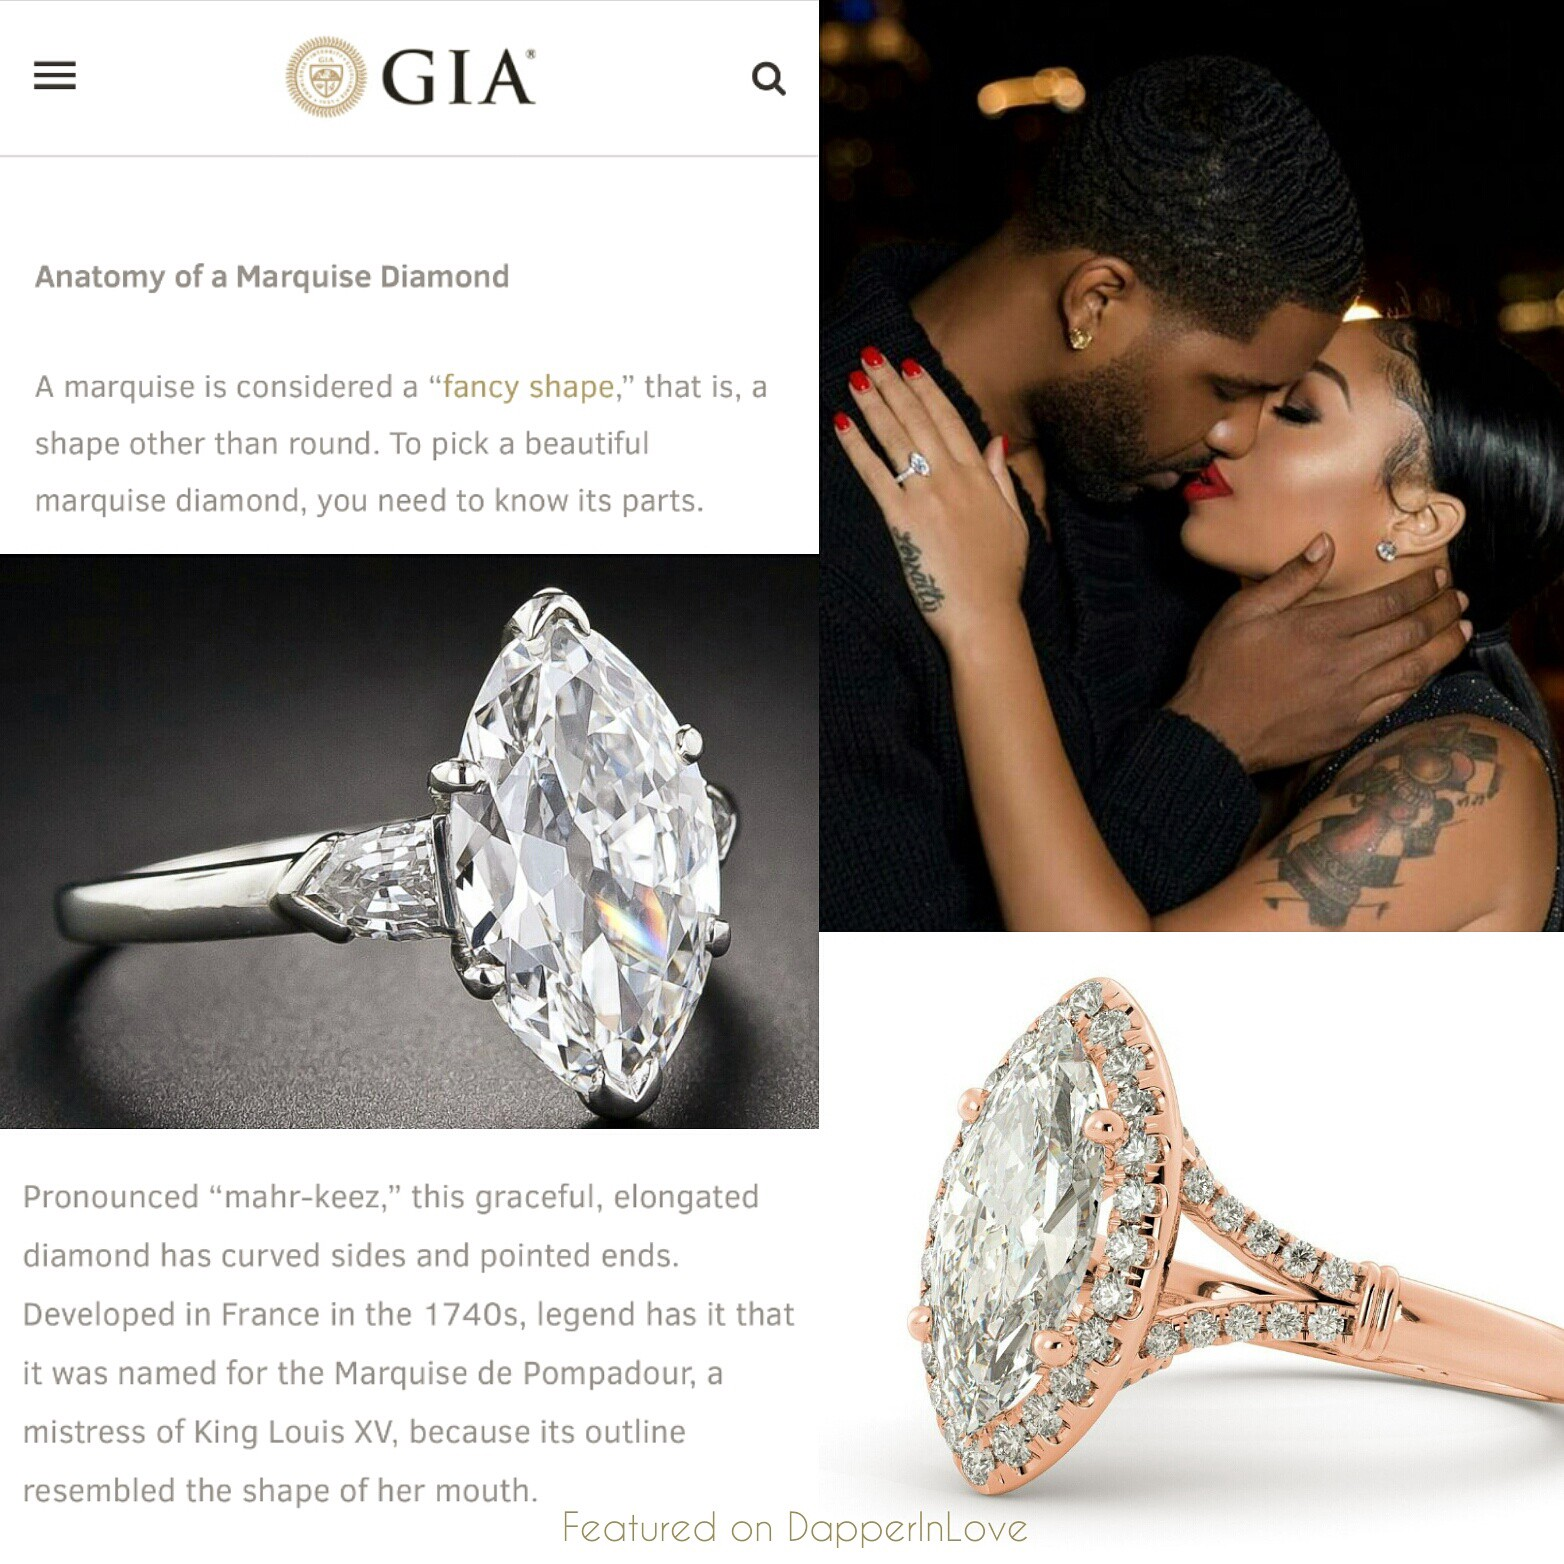 Her Diamond Is Considered A Royal Fancy Cut Because Of It S Elongated Shape But That Not Legend Dictates King Louis Xv Named This